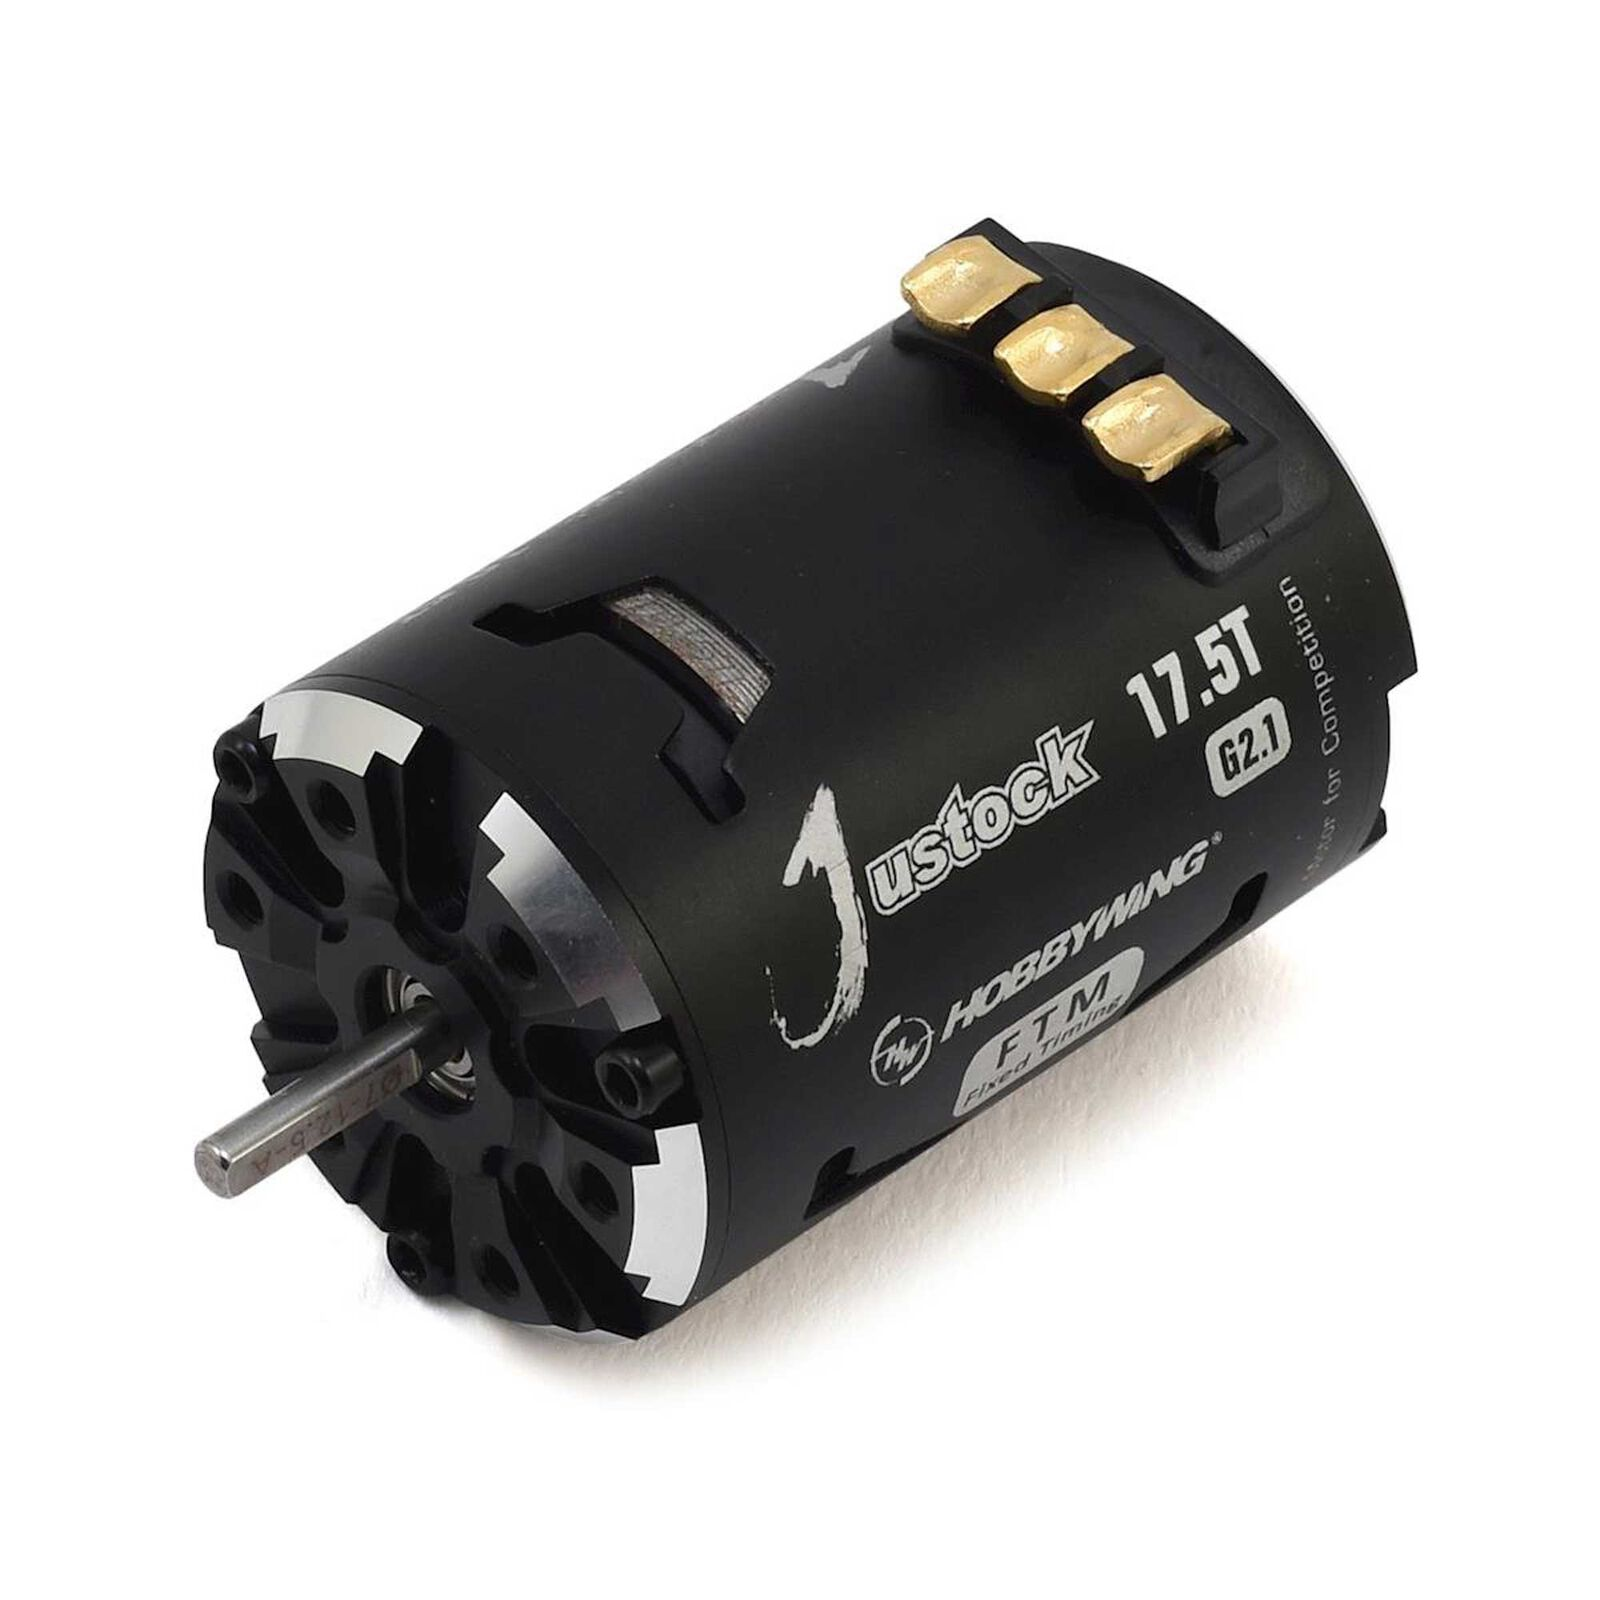 Justock Fixed Timing Motor, 17.5